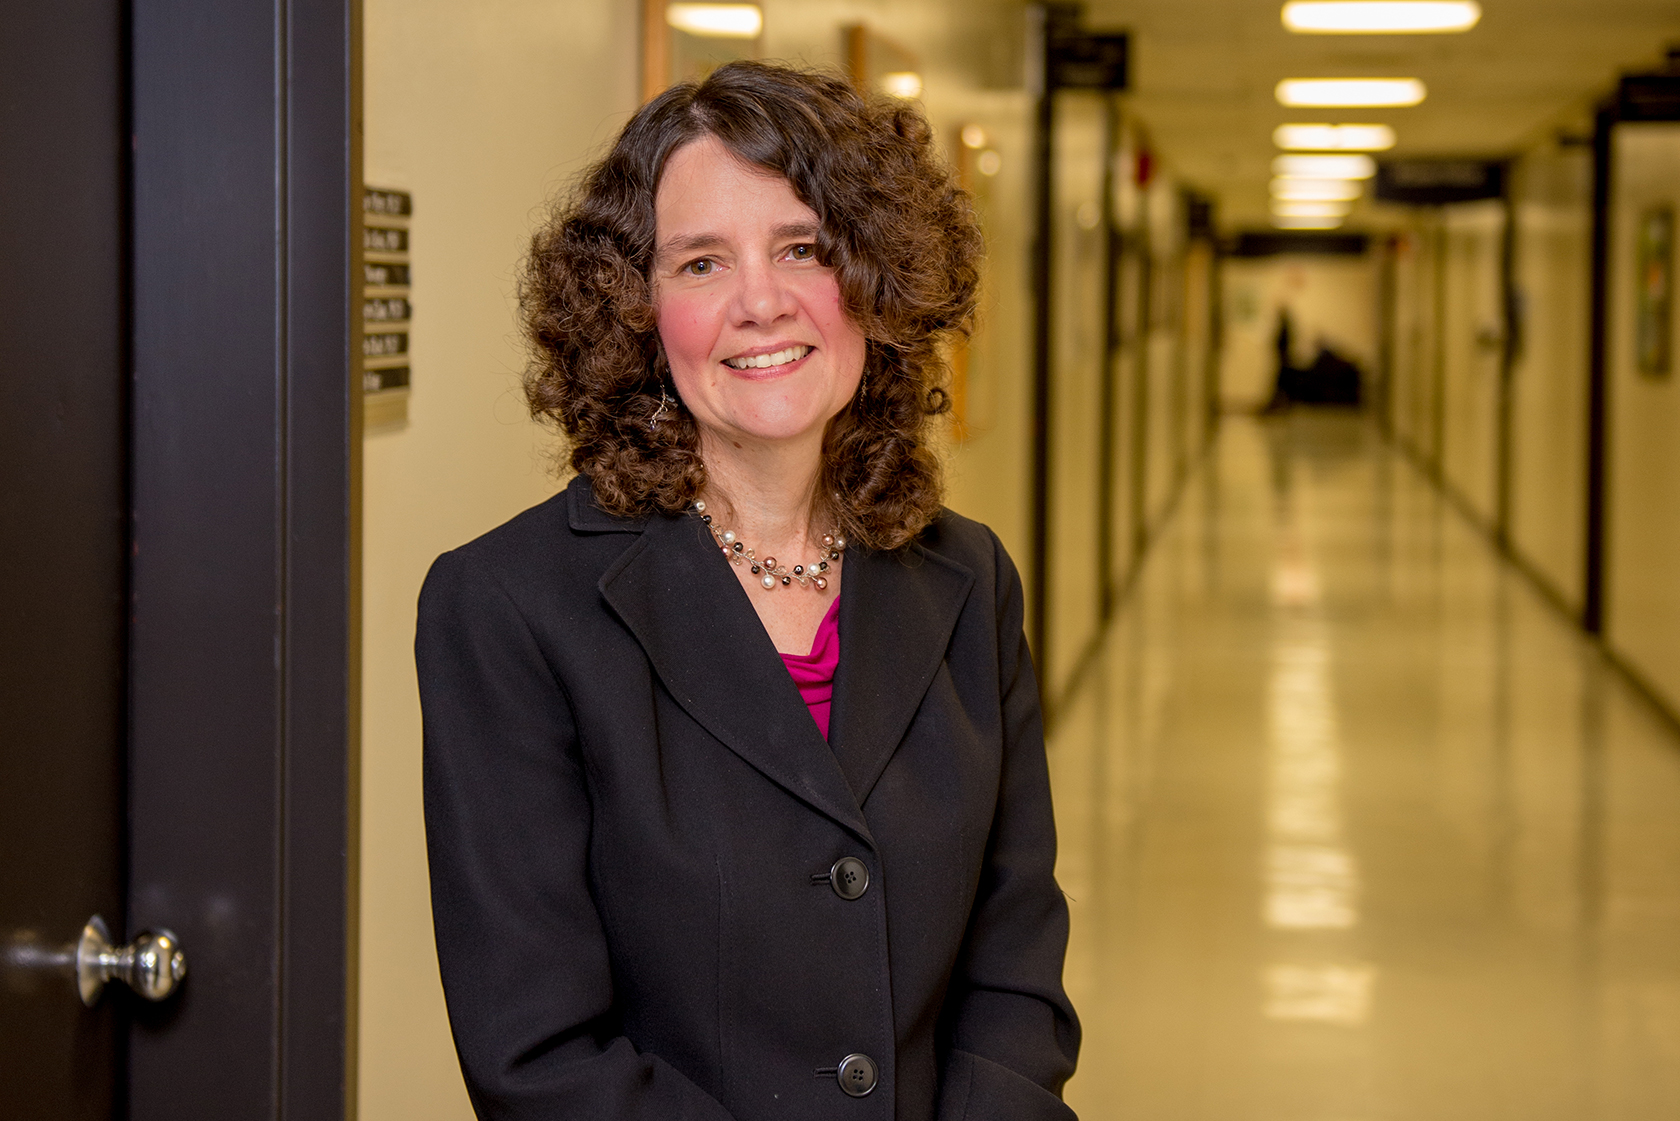 Nancy M. Petry, Ph.D., in a hallway